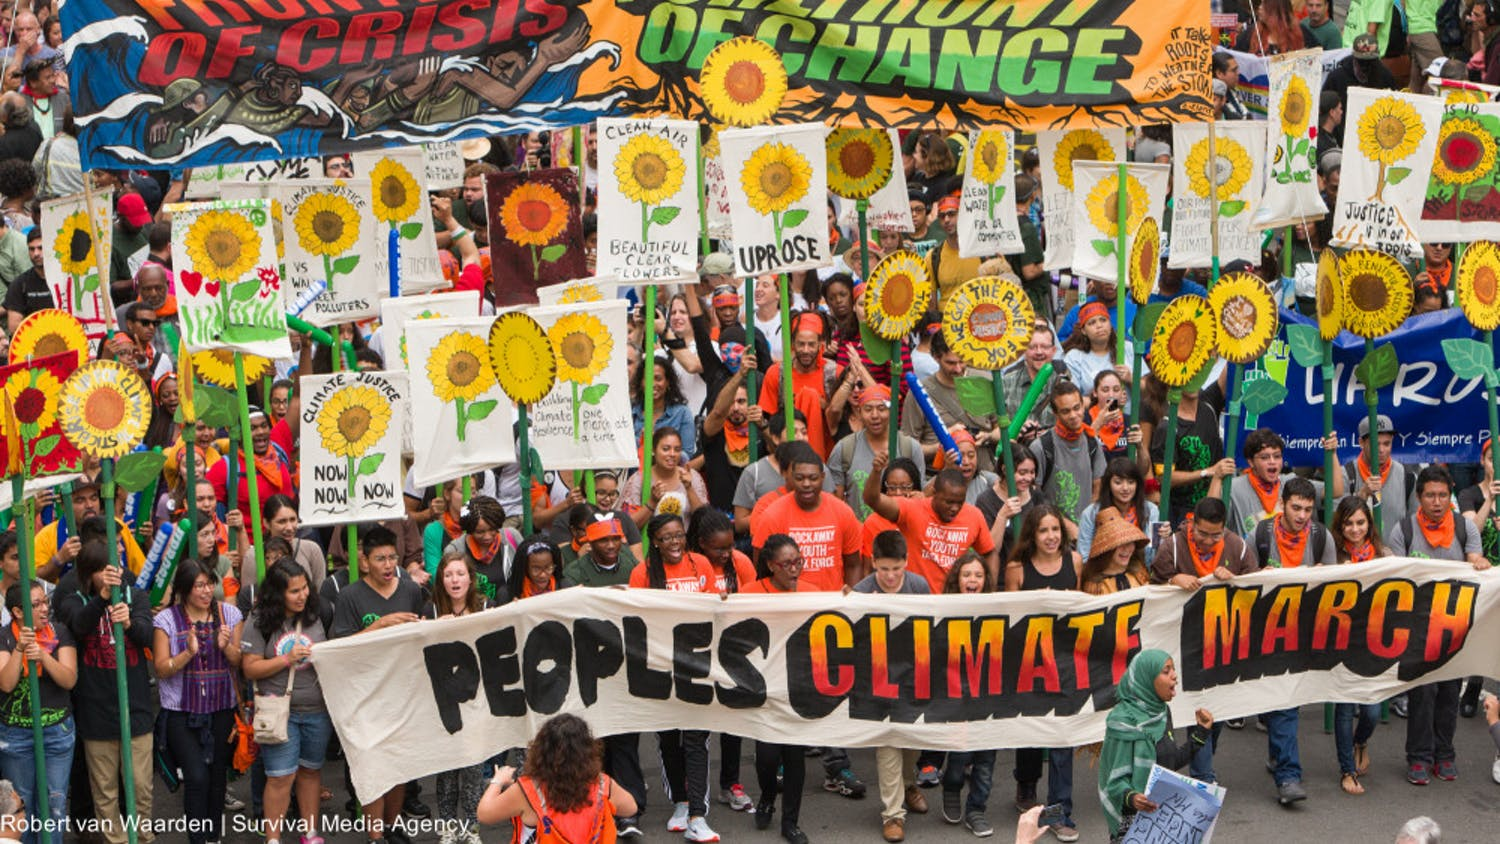 Over 300,000 protesters took to the streets to advocate for environmental justice at the People's Climate March, in 2014. Leaders and policymakers are beginning to implement the concept and work grassroot coalitions have been pushing for years. // Photo courtesy of Robert van Waarden, Survival Media Agency via Flickr.